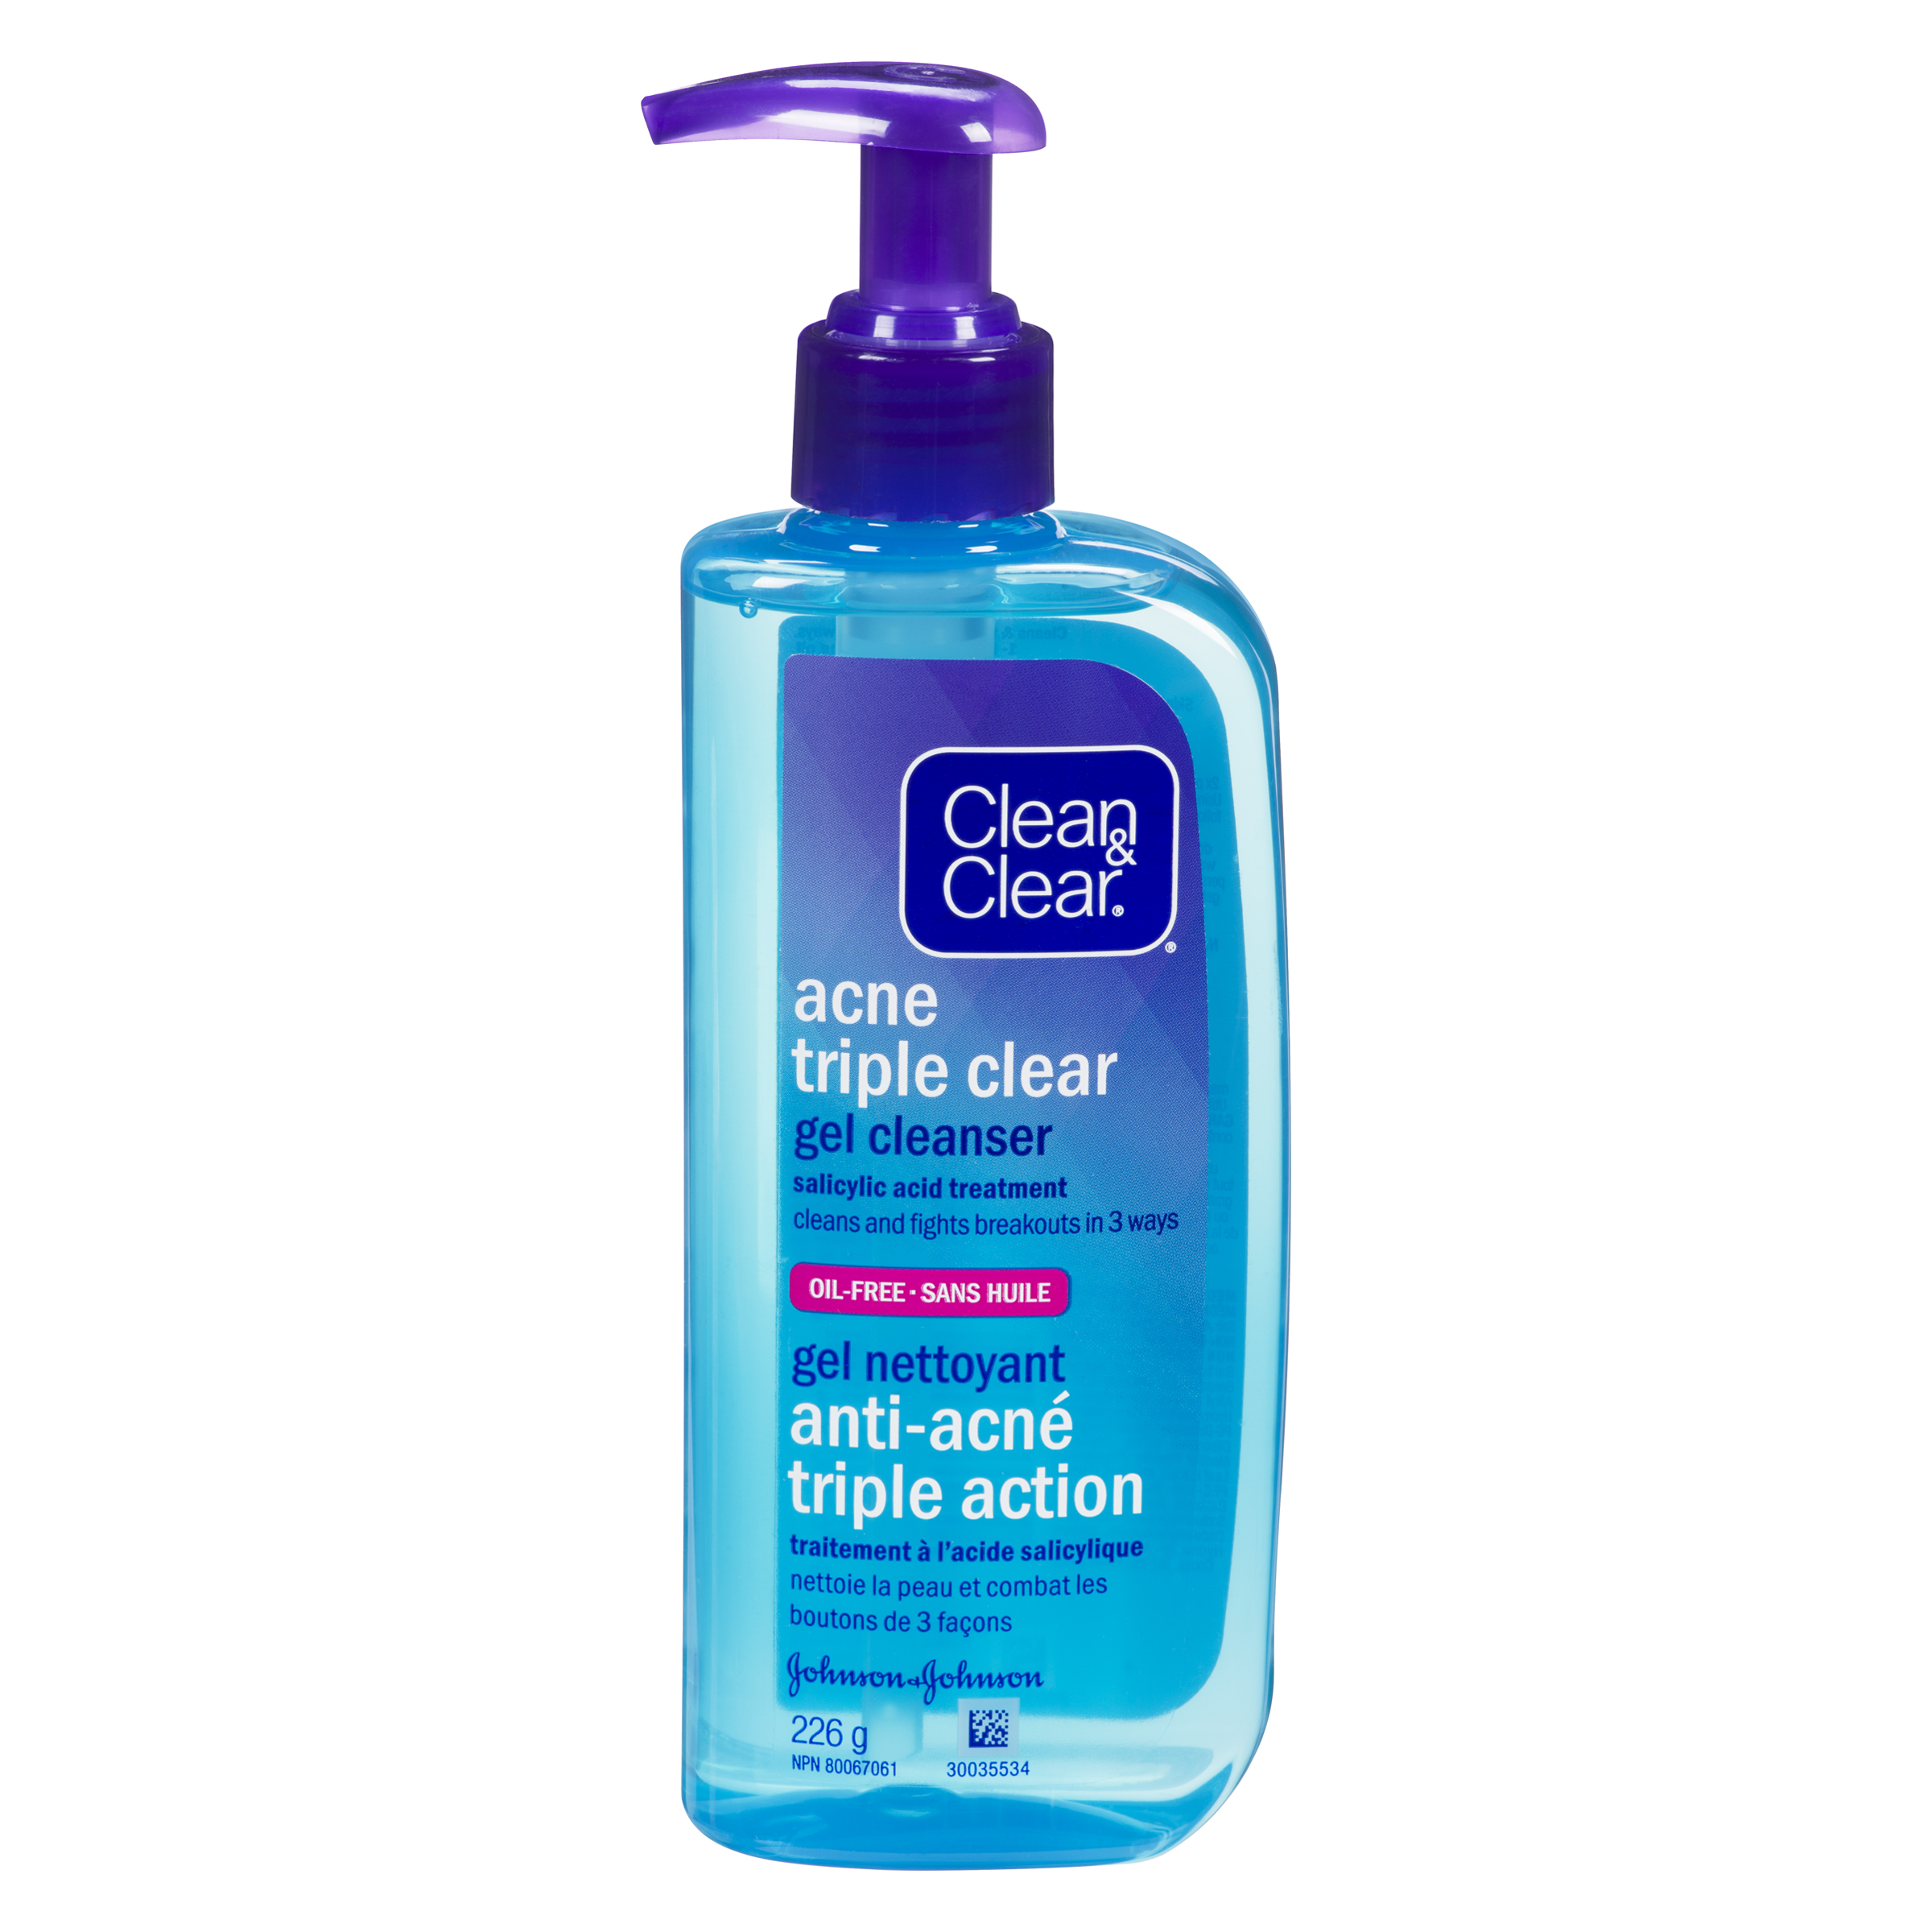 Acne Triple Clear Gel Cleanser Clean Amp Clear 174 Canada